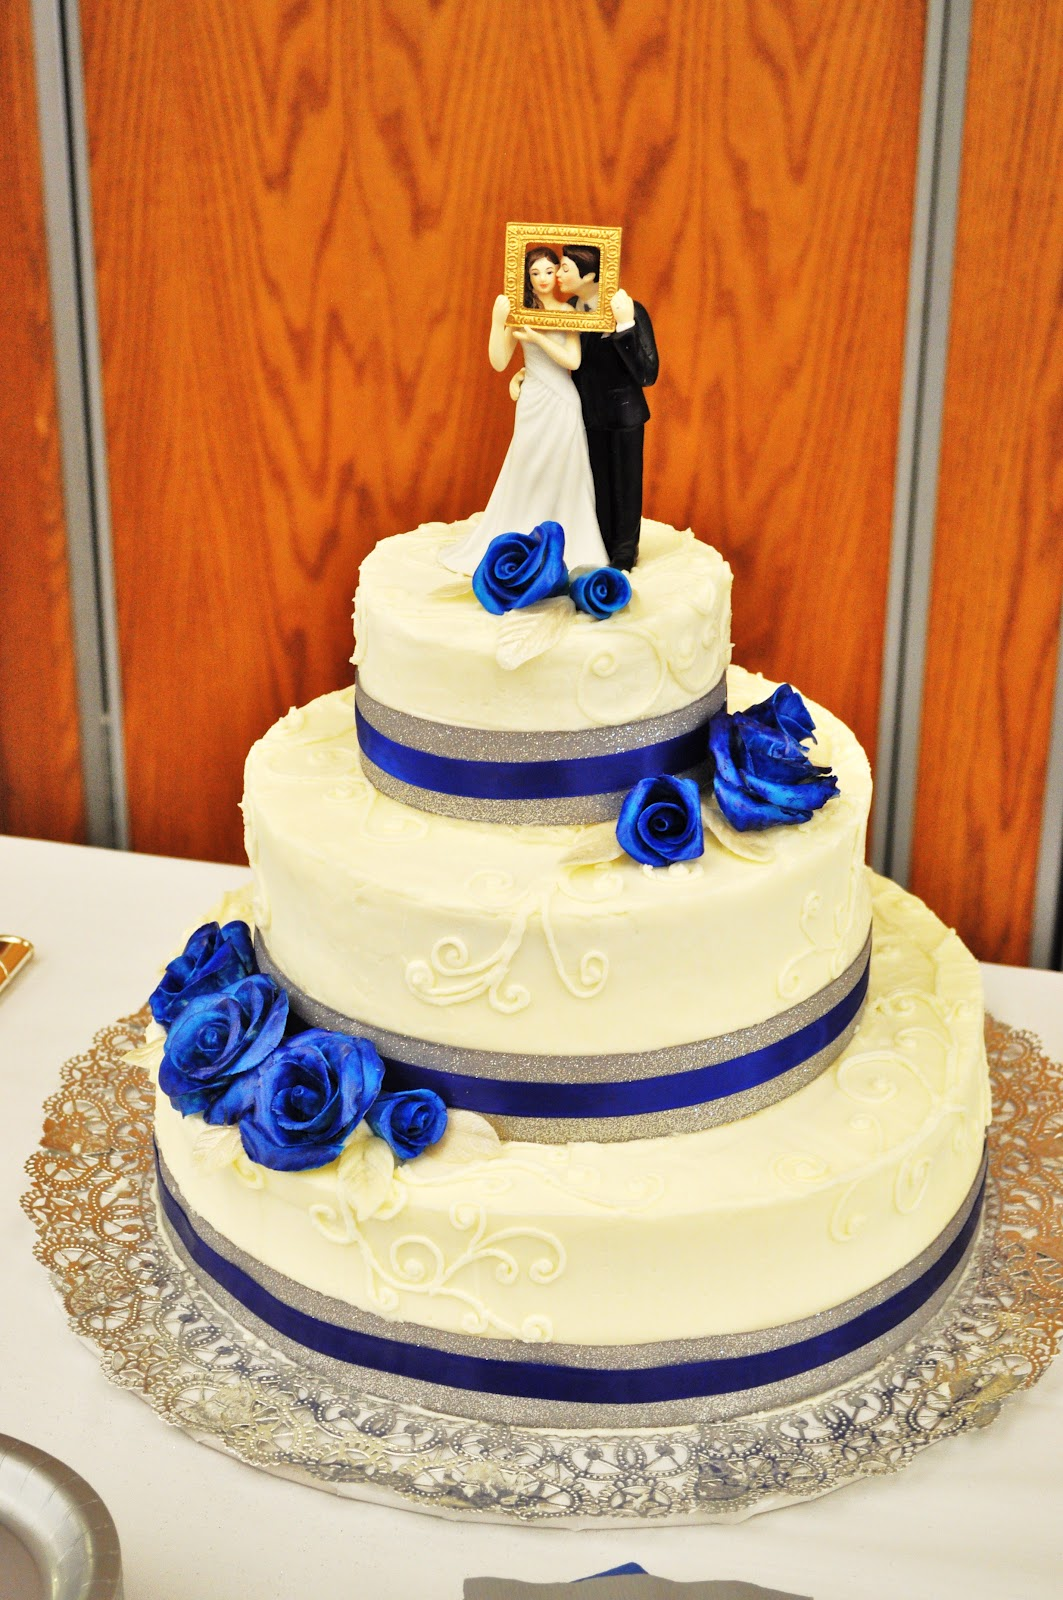 CakeJoy Royal Blue and Silver Wedding